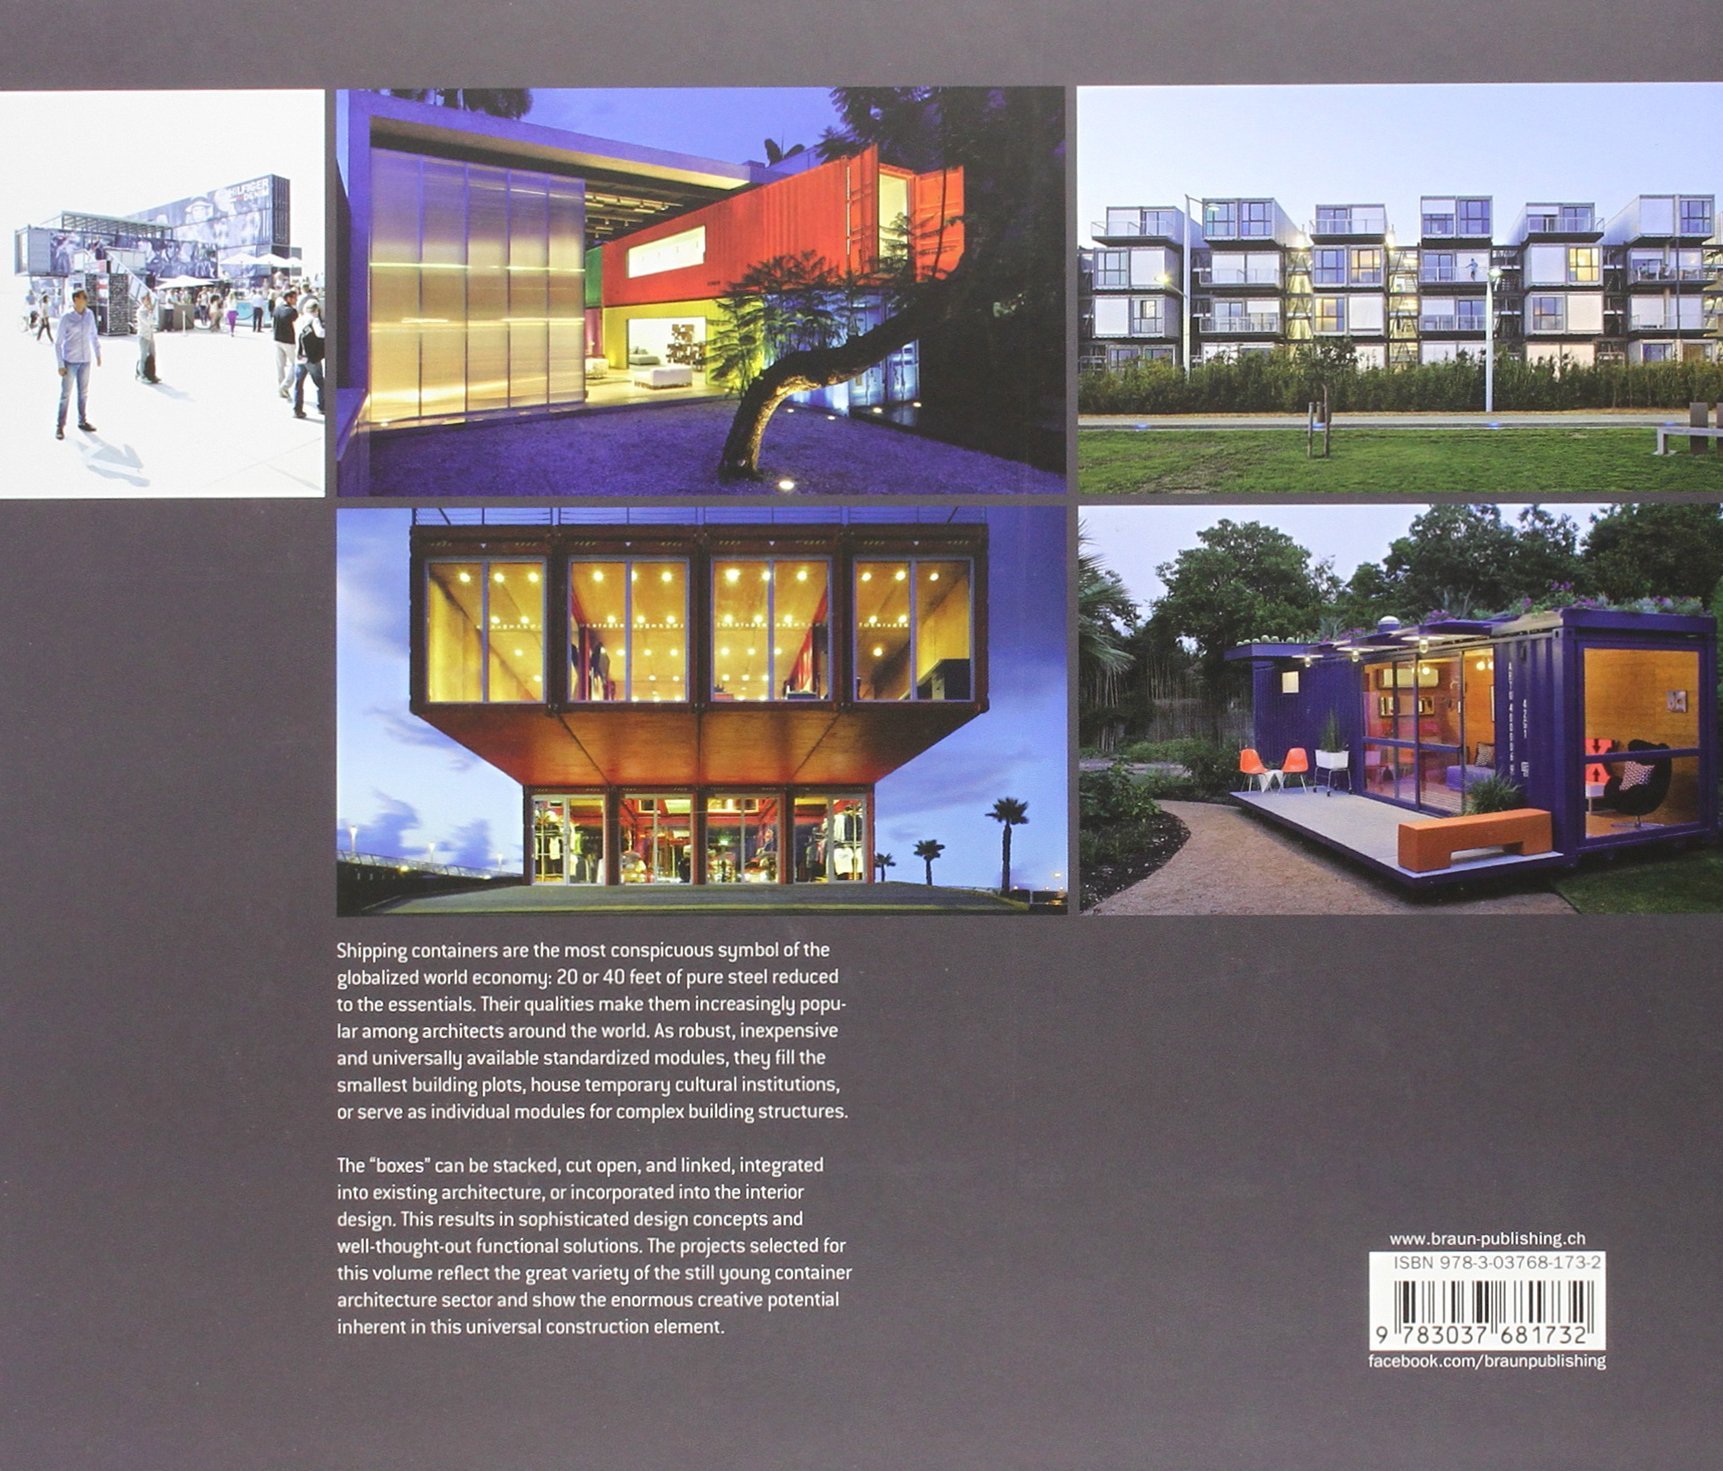 the box architectural solutions with containers sibylle kramer the box architectural solutions with containers sibylle kramer 9783037681732 amazon com books